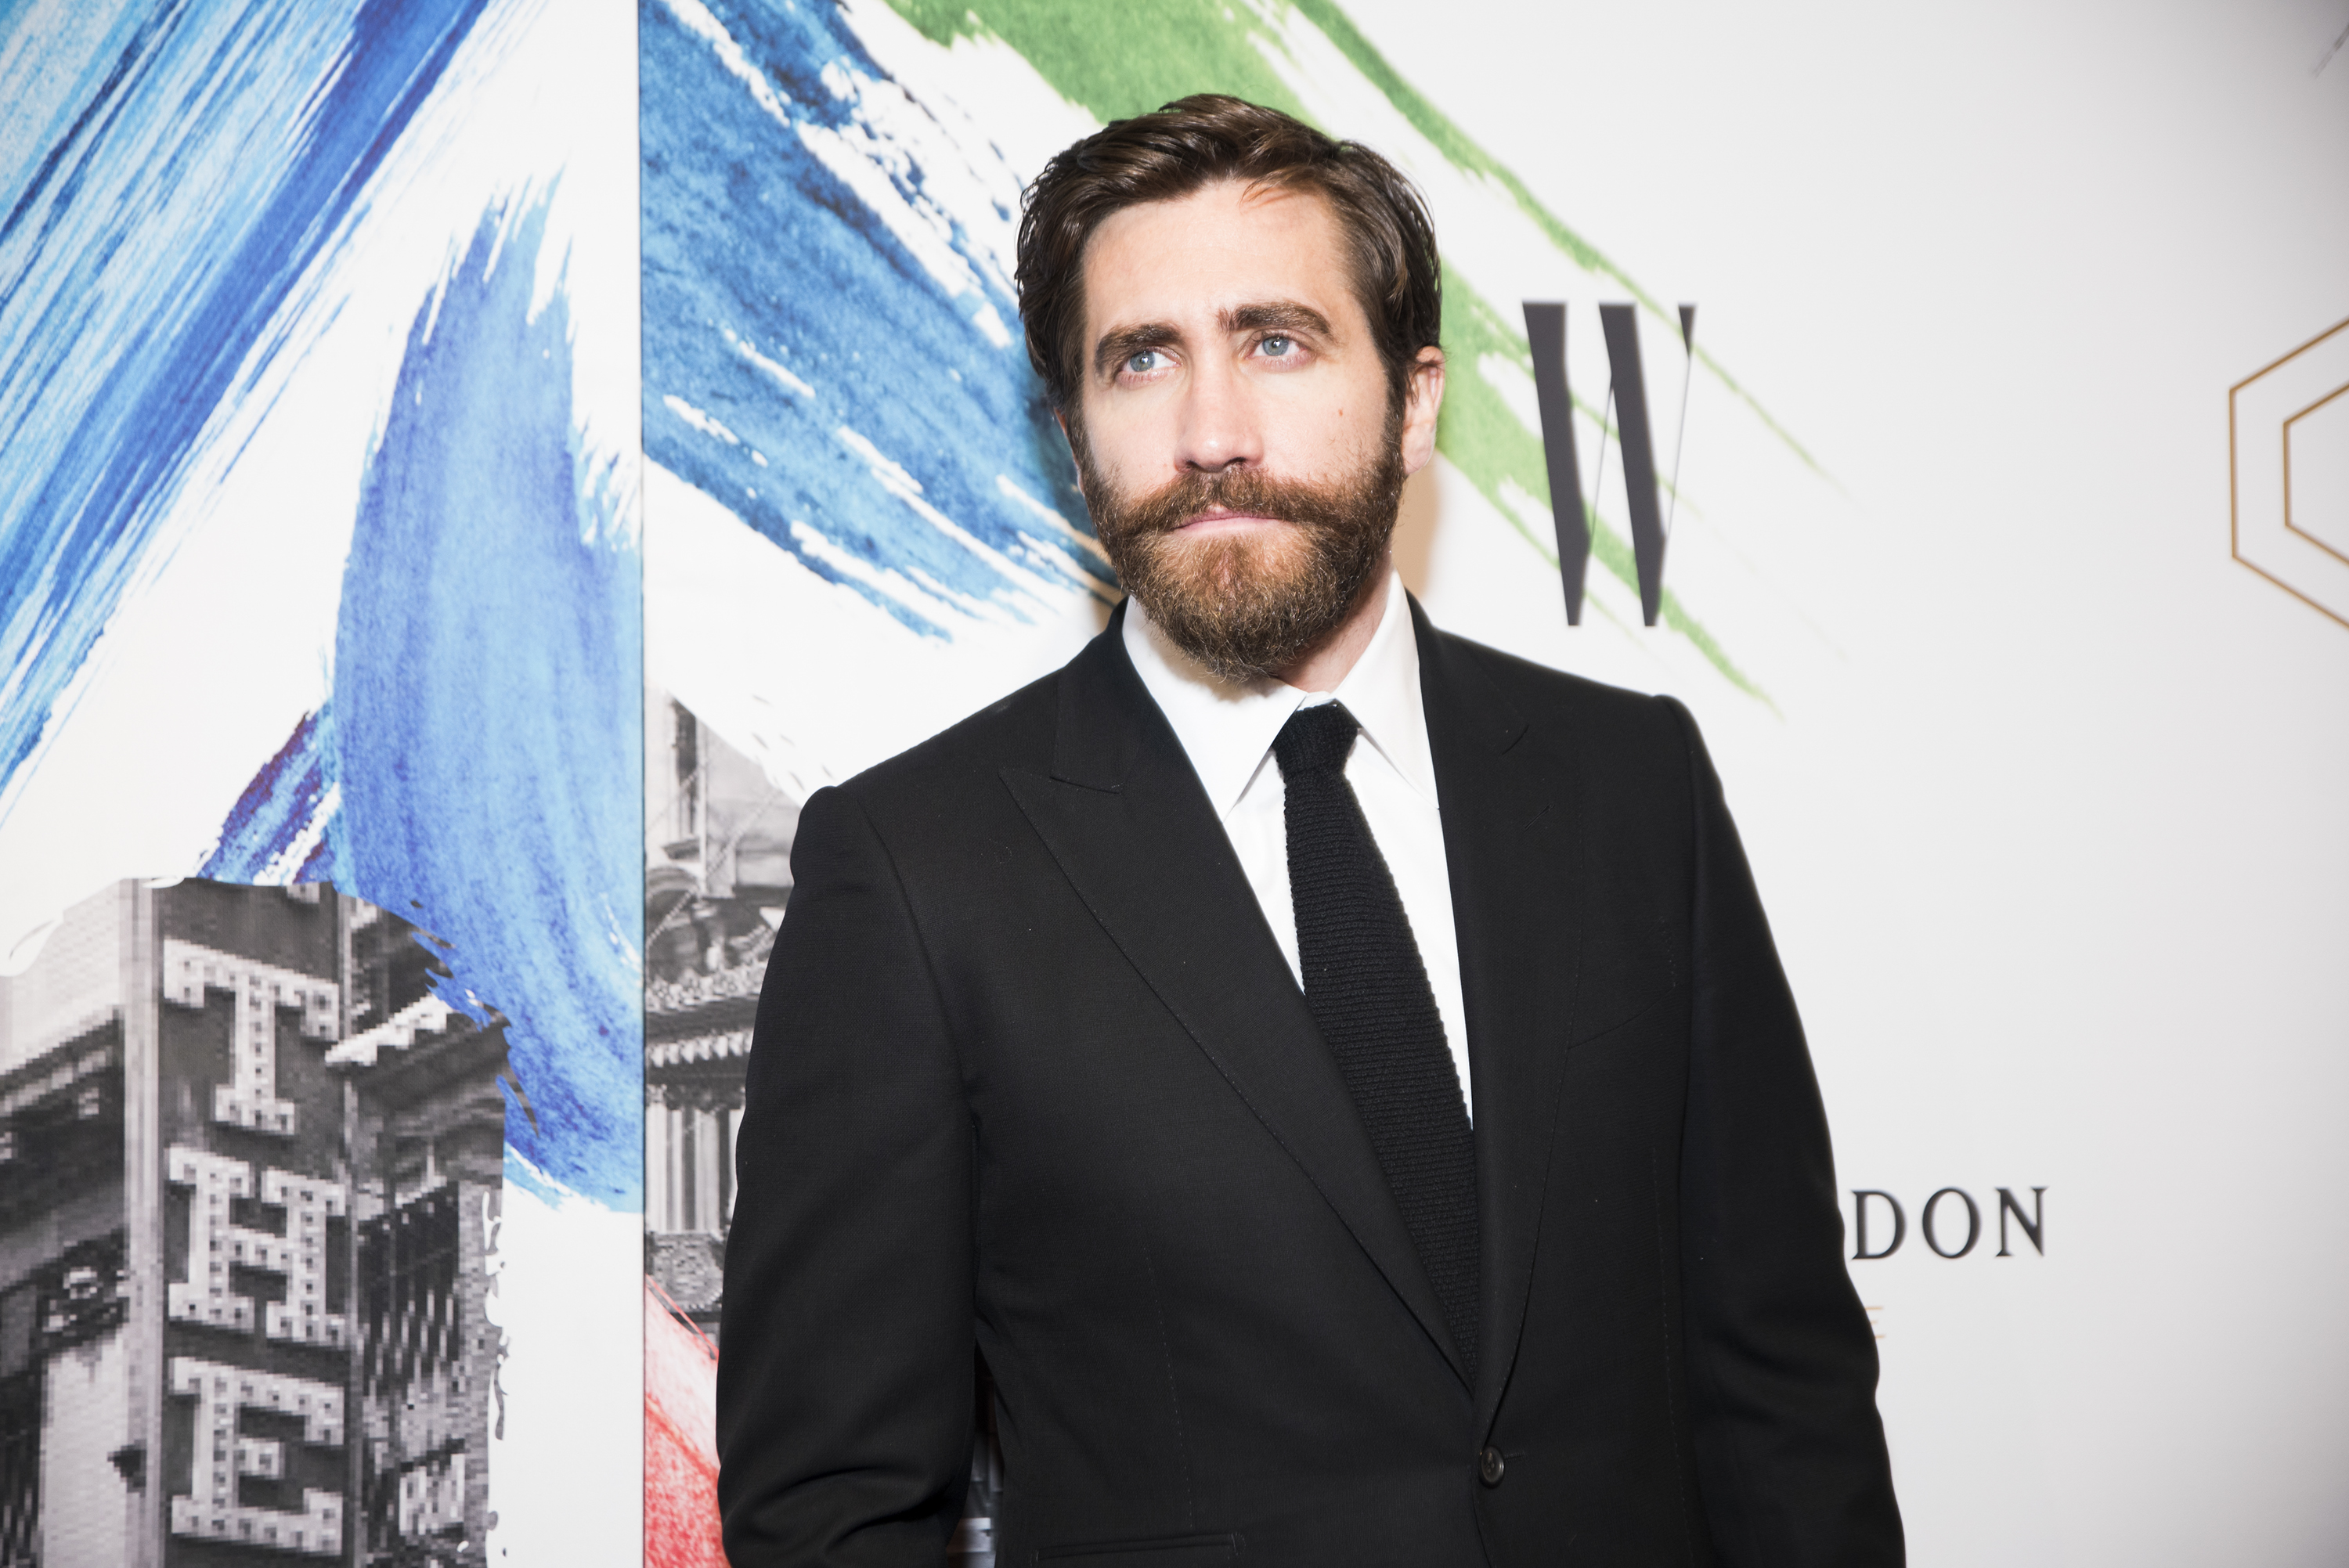 Jake Gyllenhaal attends 'Sunday In The Park With George' opening night at New York Public Library on February 23, 2017 in New York City.